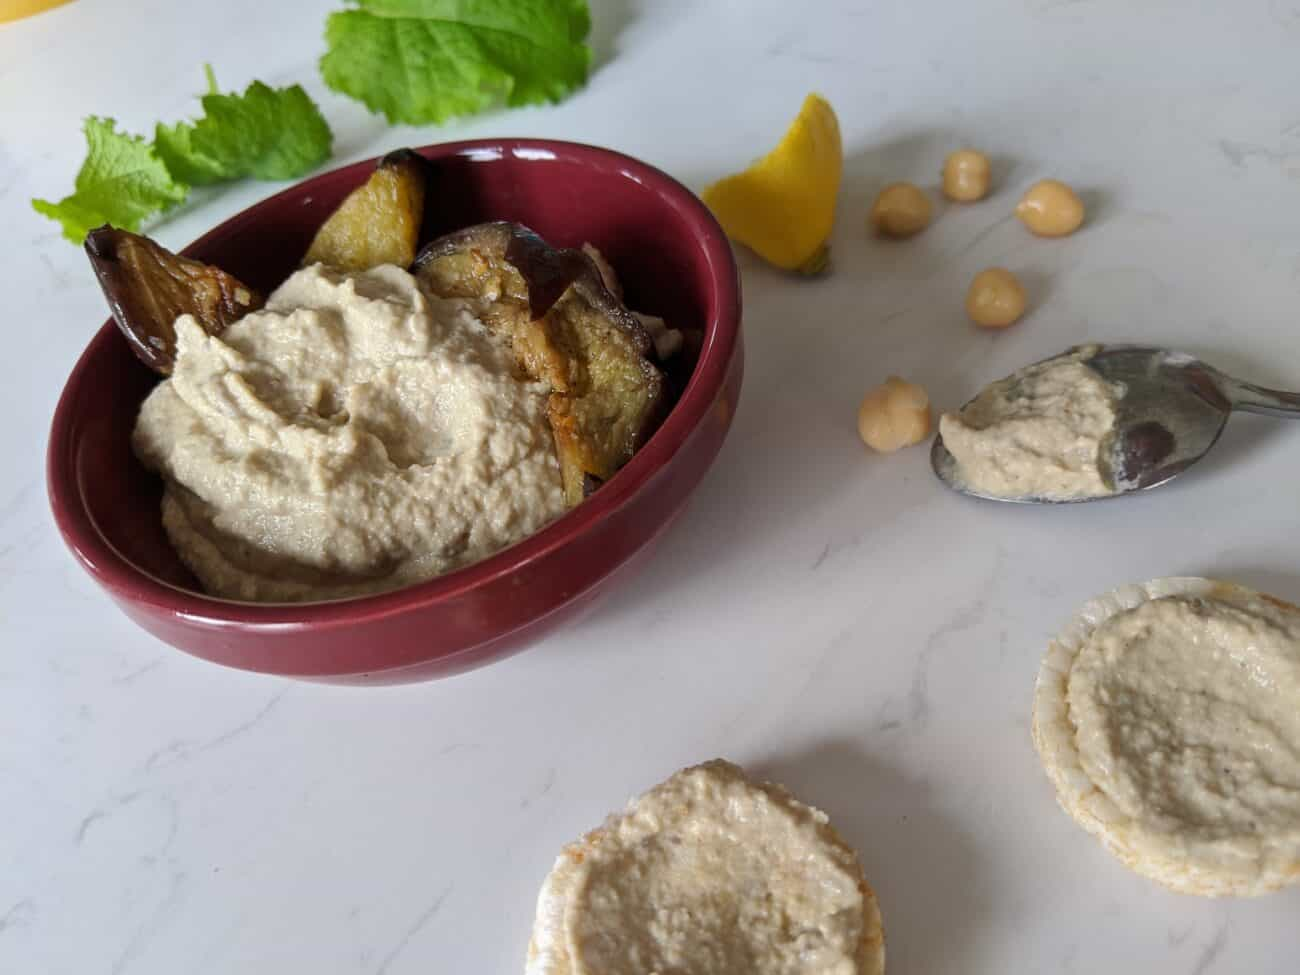 Creamy Aubergine and Chickpea Dip